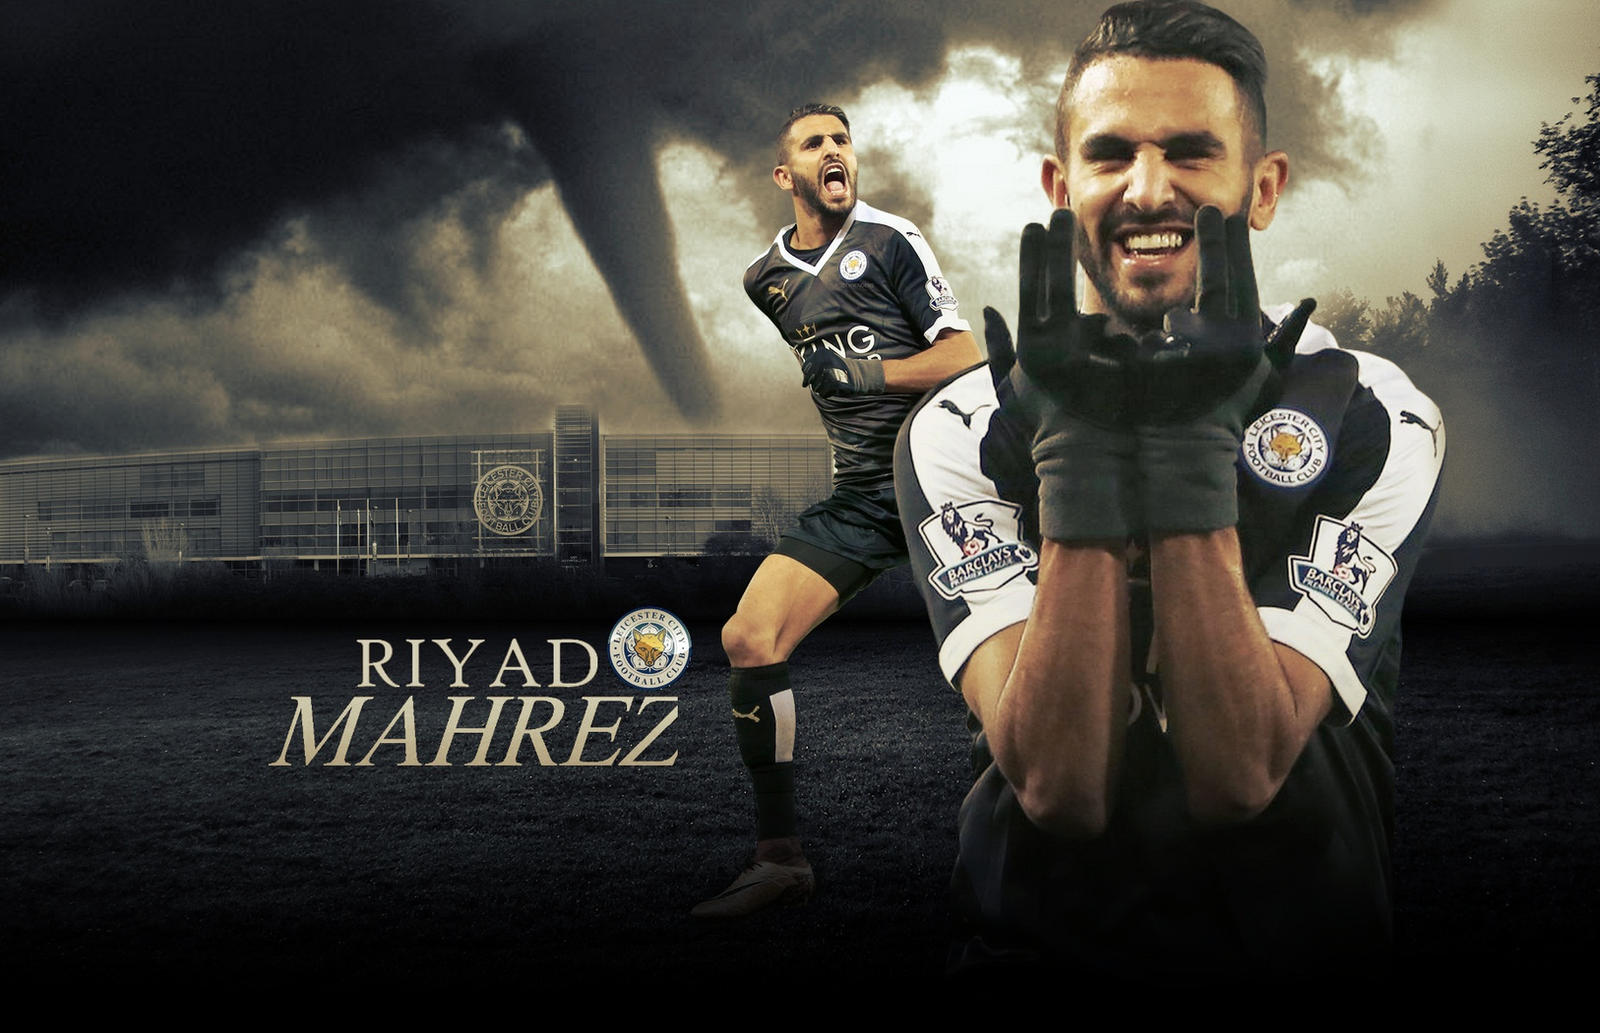 Riyad Mahrez Wallpaper 2015/16 By ChrisRamos4 On DeviantArt